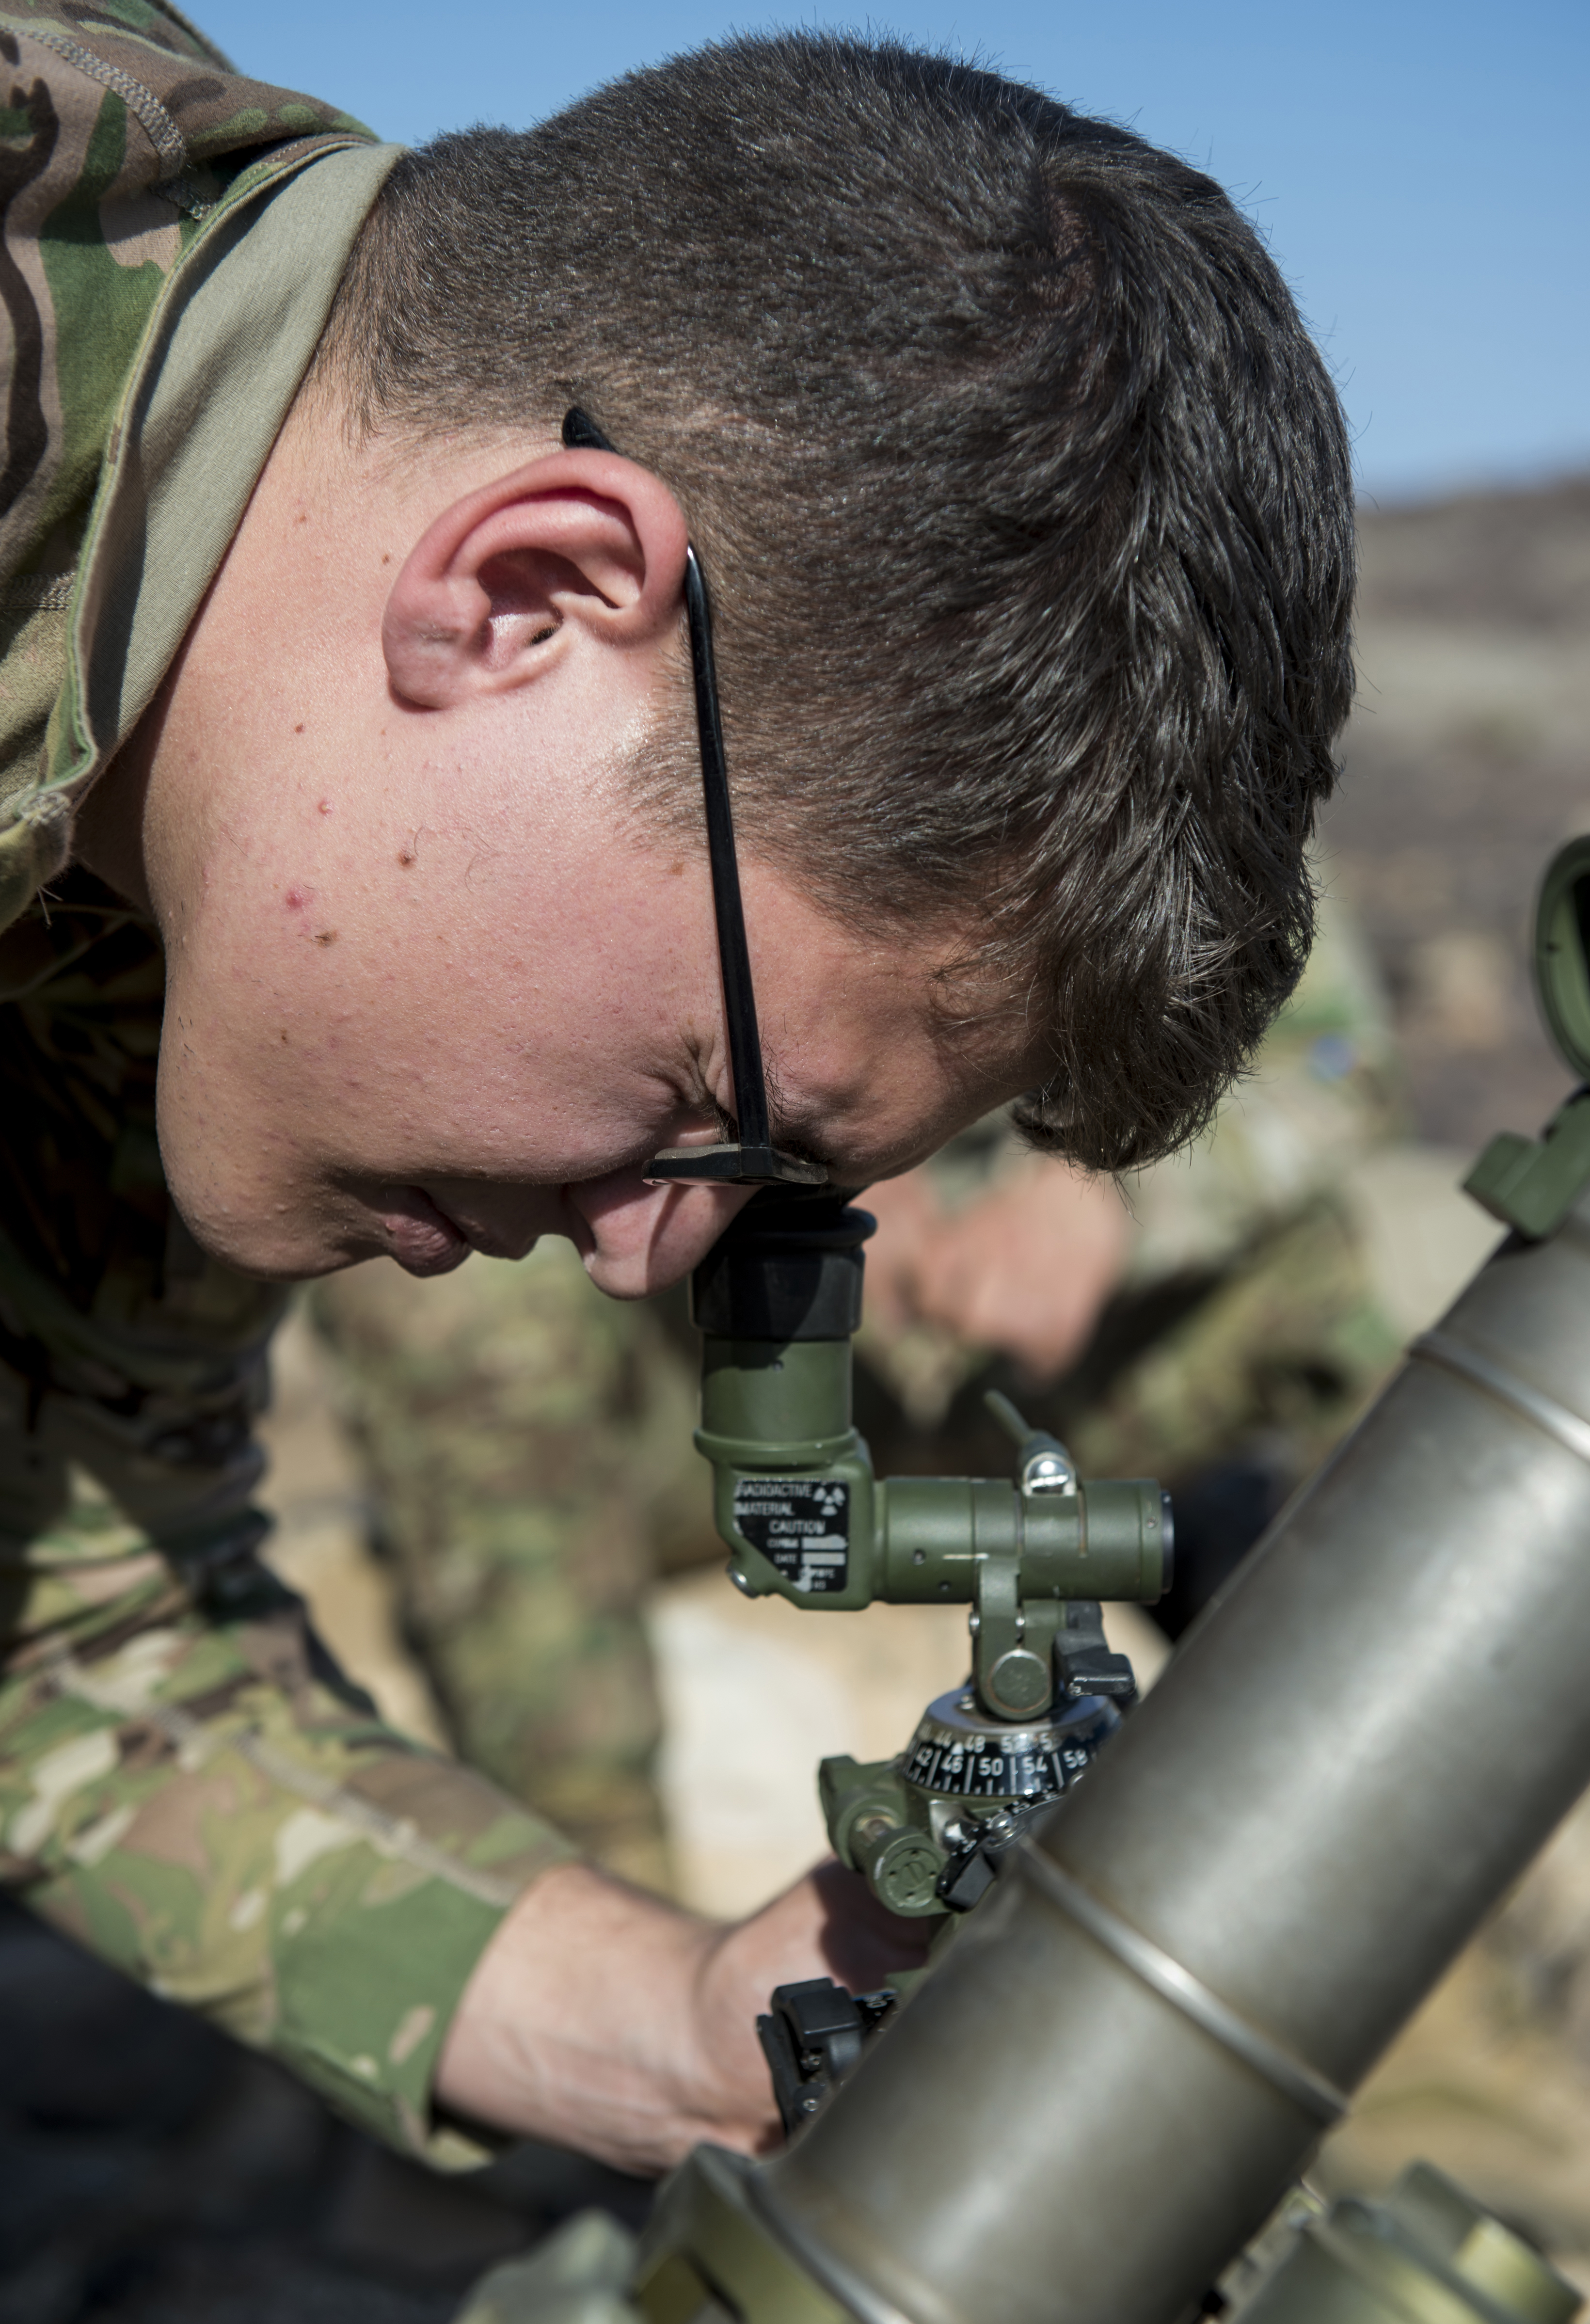 U.S. Army Spc. Tyler Rodriguez, Alpha Company, 3rd Battalion, 15th Infantry Regiment mortar gunner, aligns sights on a M224 60mm mortar launcher October 12, 2015, in Arta, Djibouti. Alpha Company operates using light infantry and various other force enablers, which operate together cohesively to accomplish their mission. (U.S. Air Force photo by Senior Airman Peter Thompson/Released)